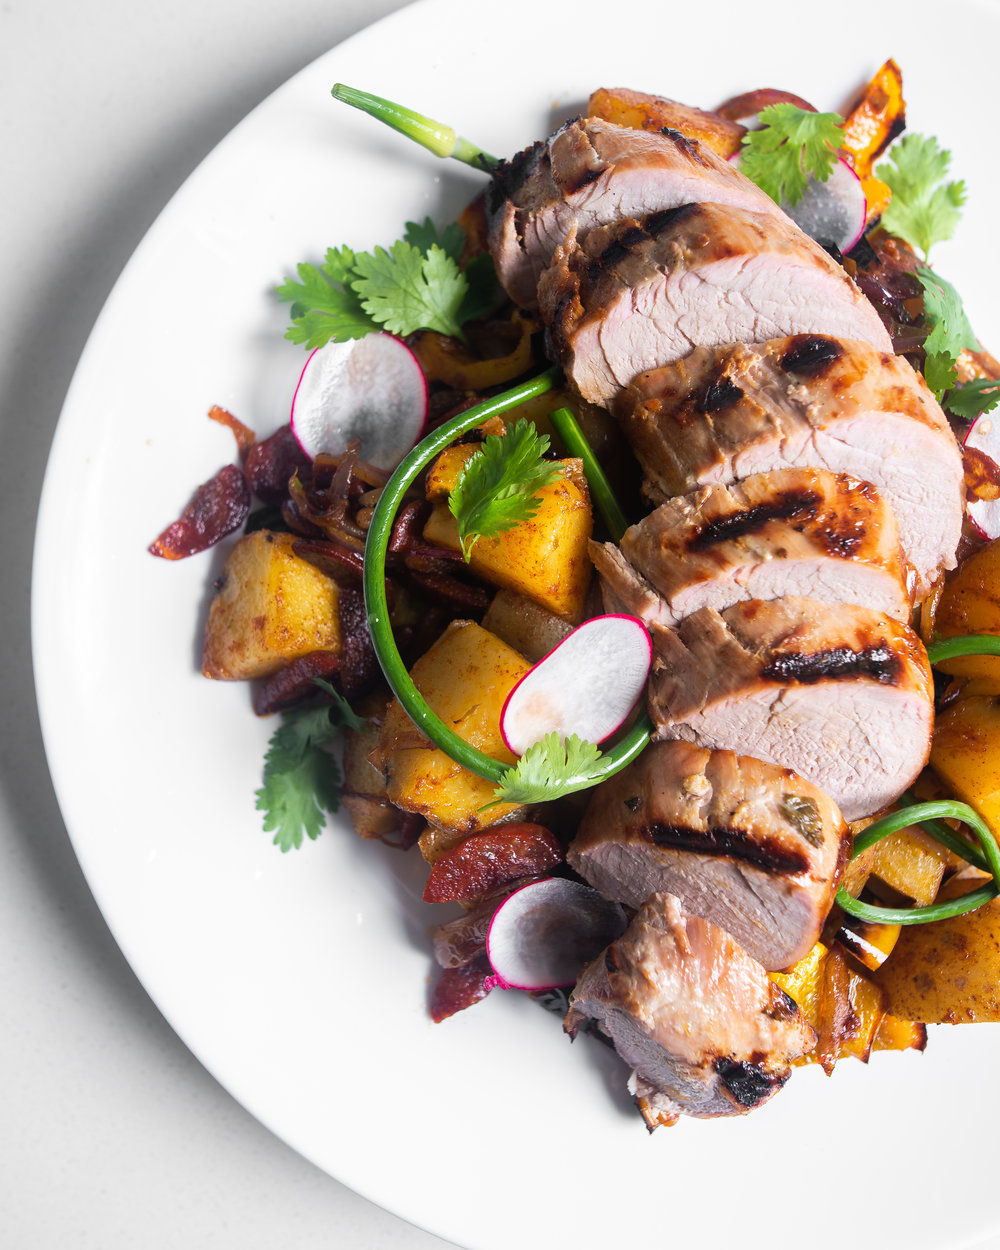 Grilled Pork Tenderloin on New Potato Hash with Chorizo, Radish and Garlic Scapes